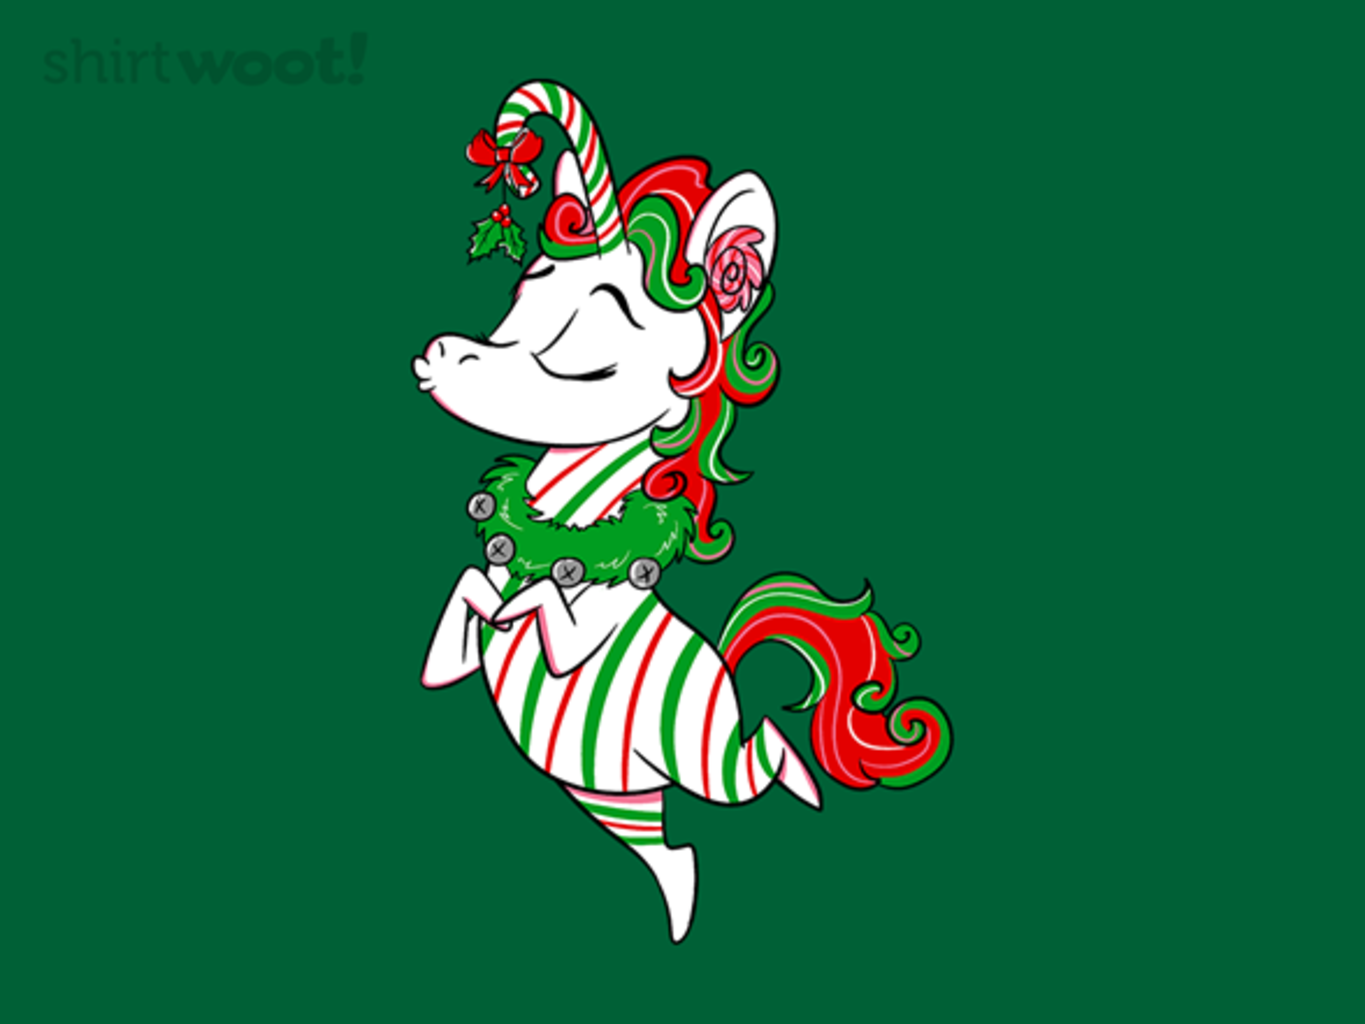 Woot!: Candy Caneicorn - $8.00 + $5 standard shipping